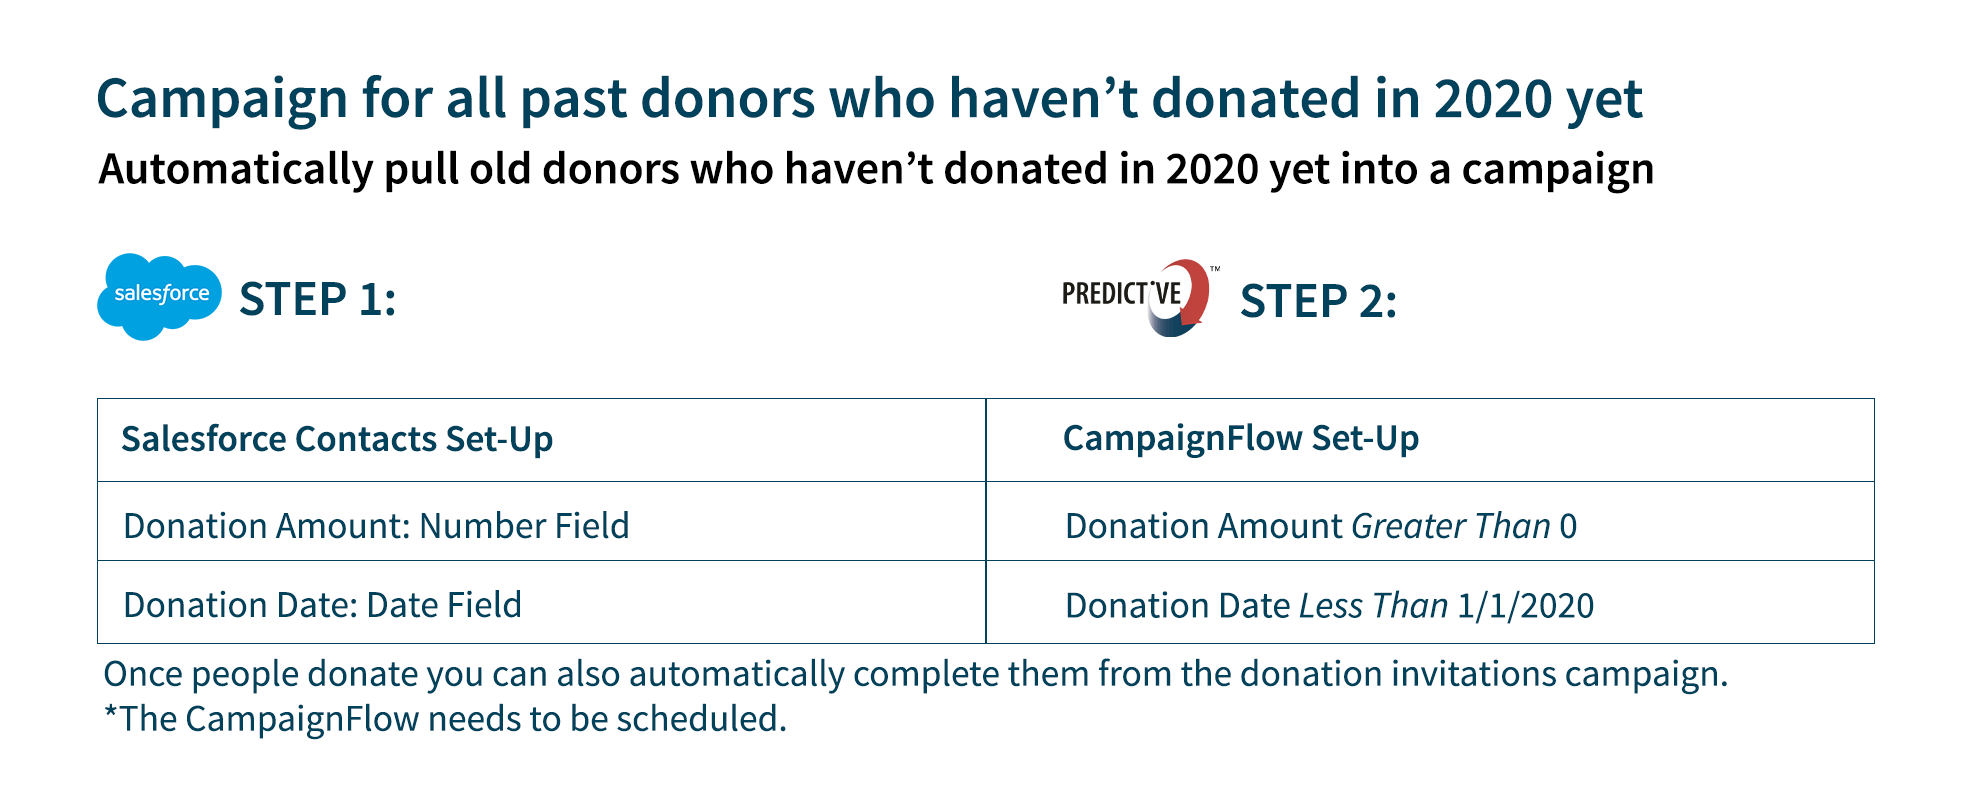 email segmentation based on non 2020 donors